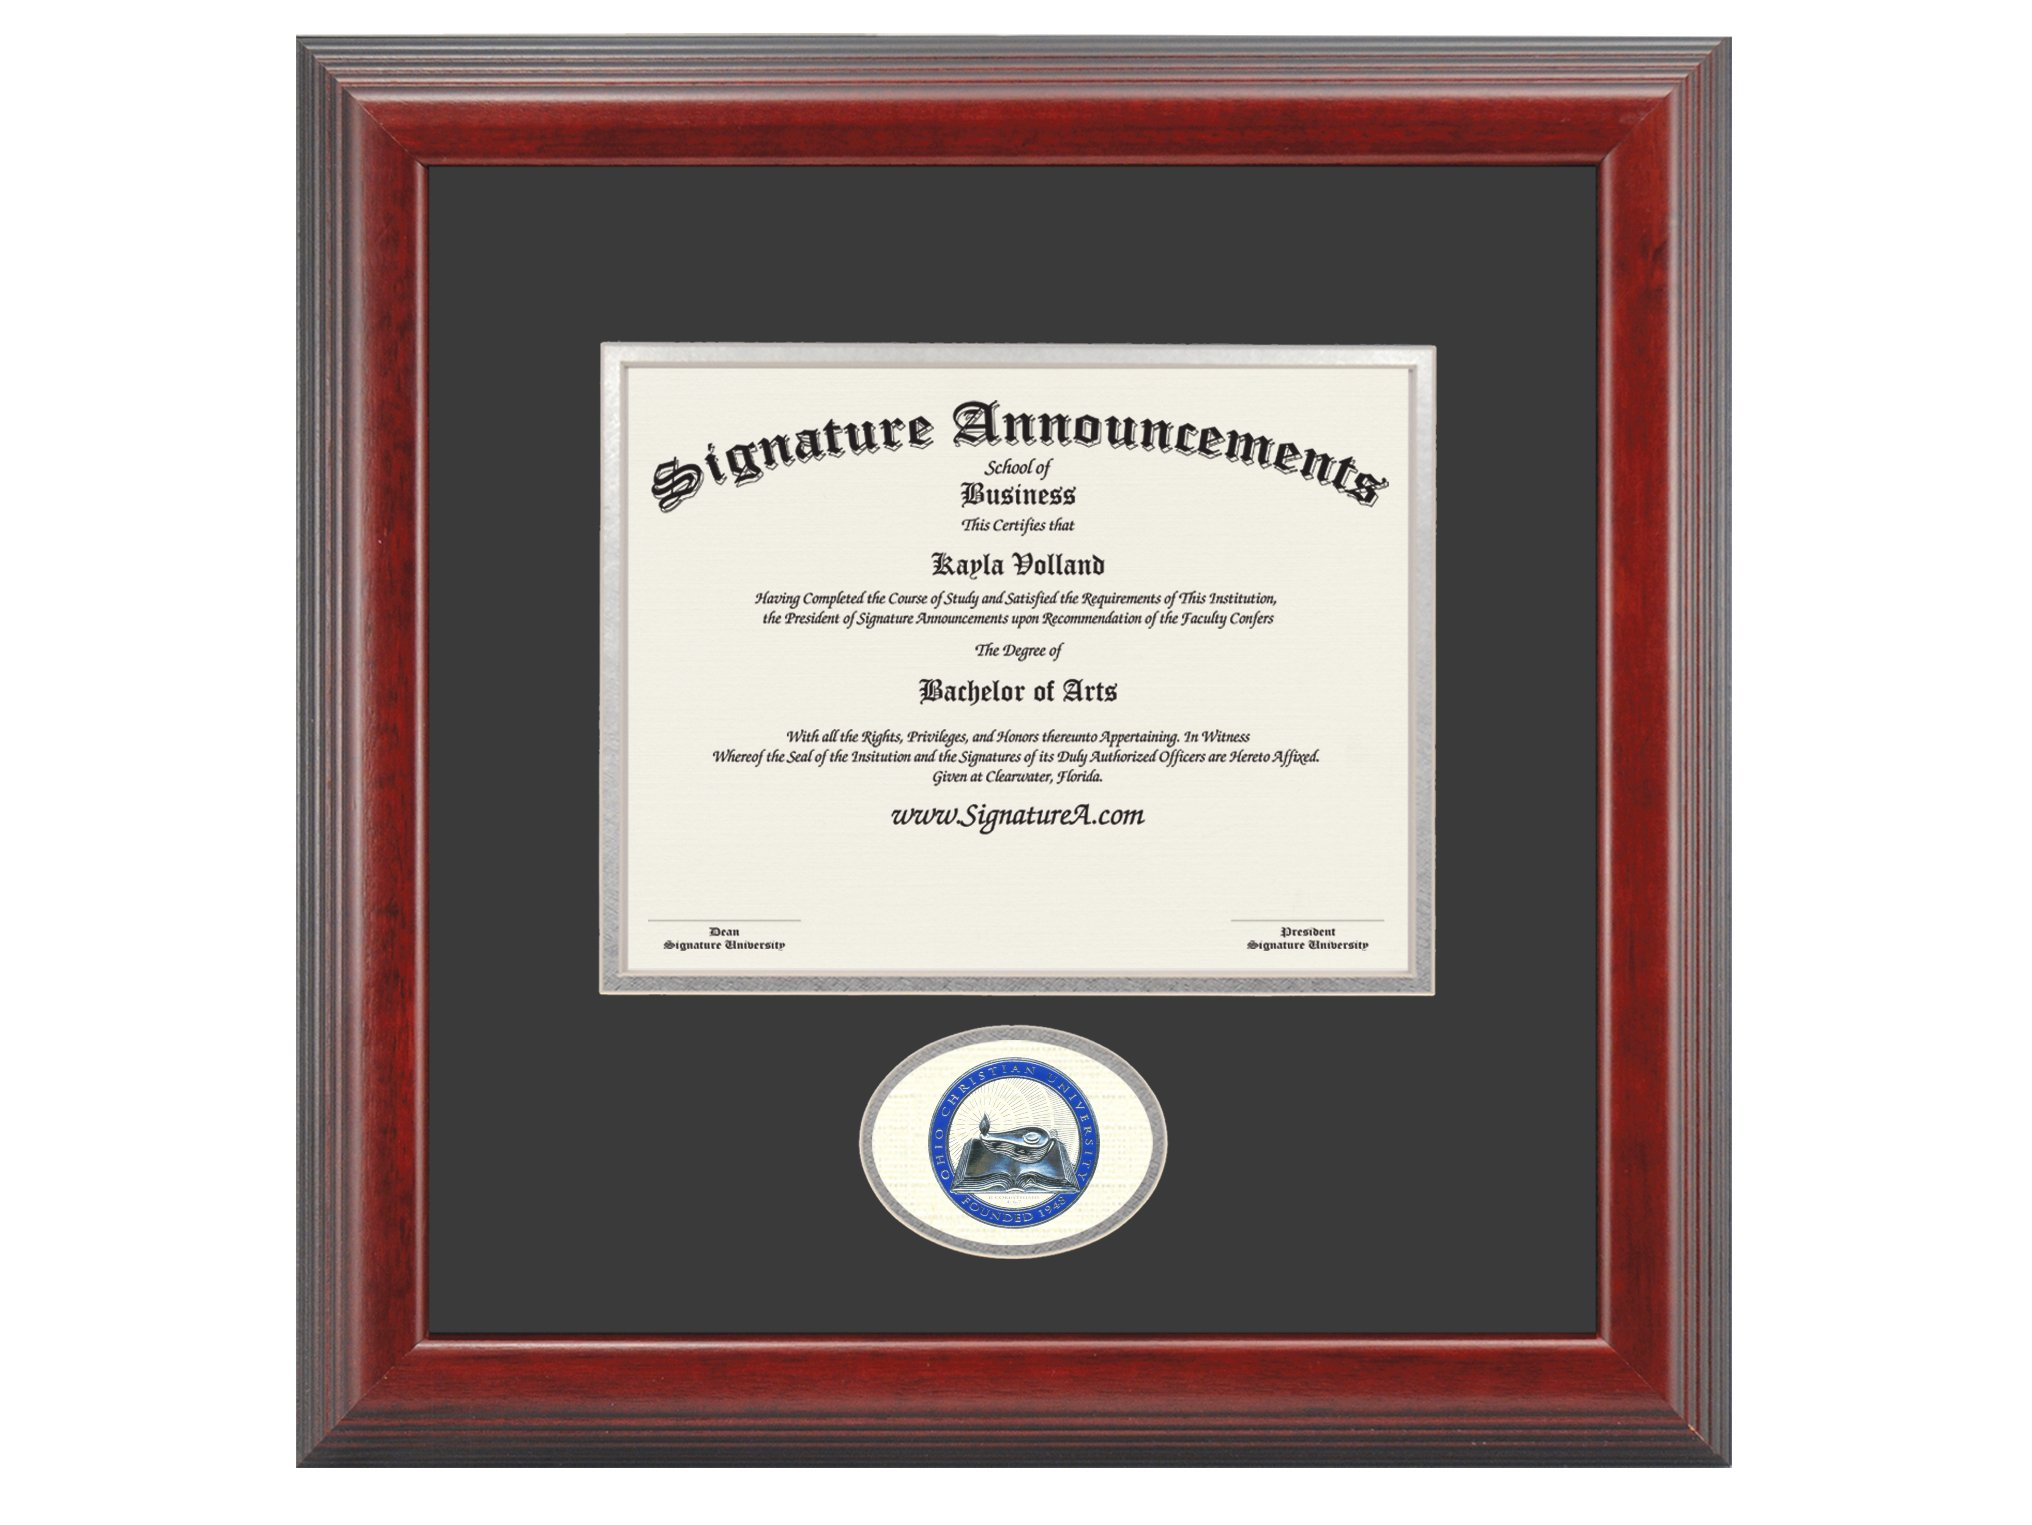 Signature Announcements Ohio-Christian-University Undergraduate, Graduate/Professional/Doctor Sculpted Foil Seal Diploma Frame, 16'' x 16'', Cherry